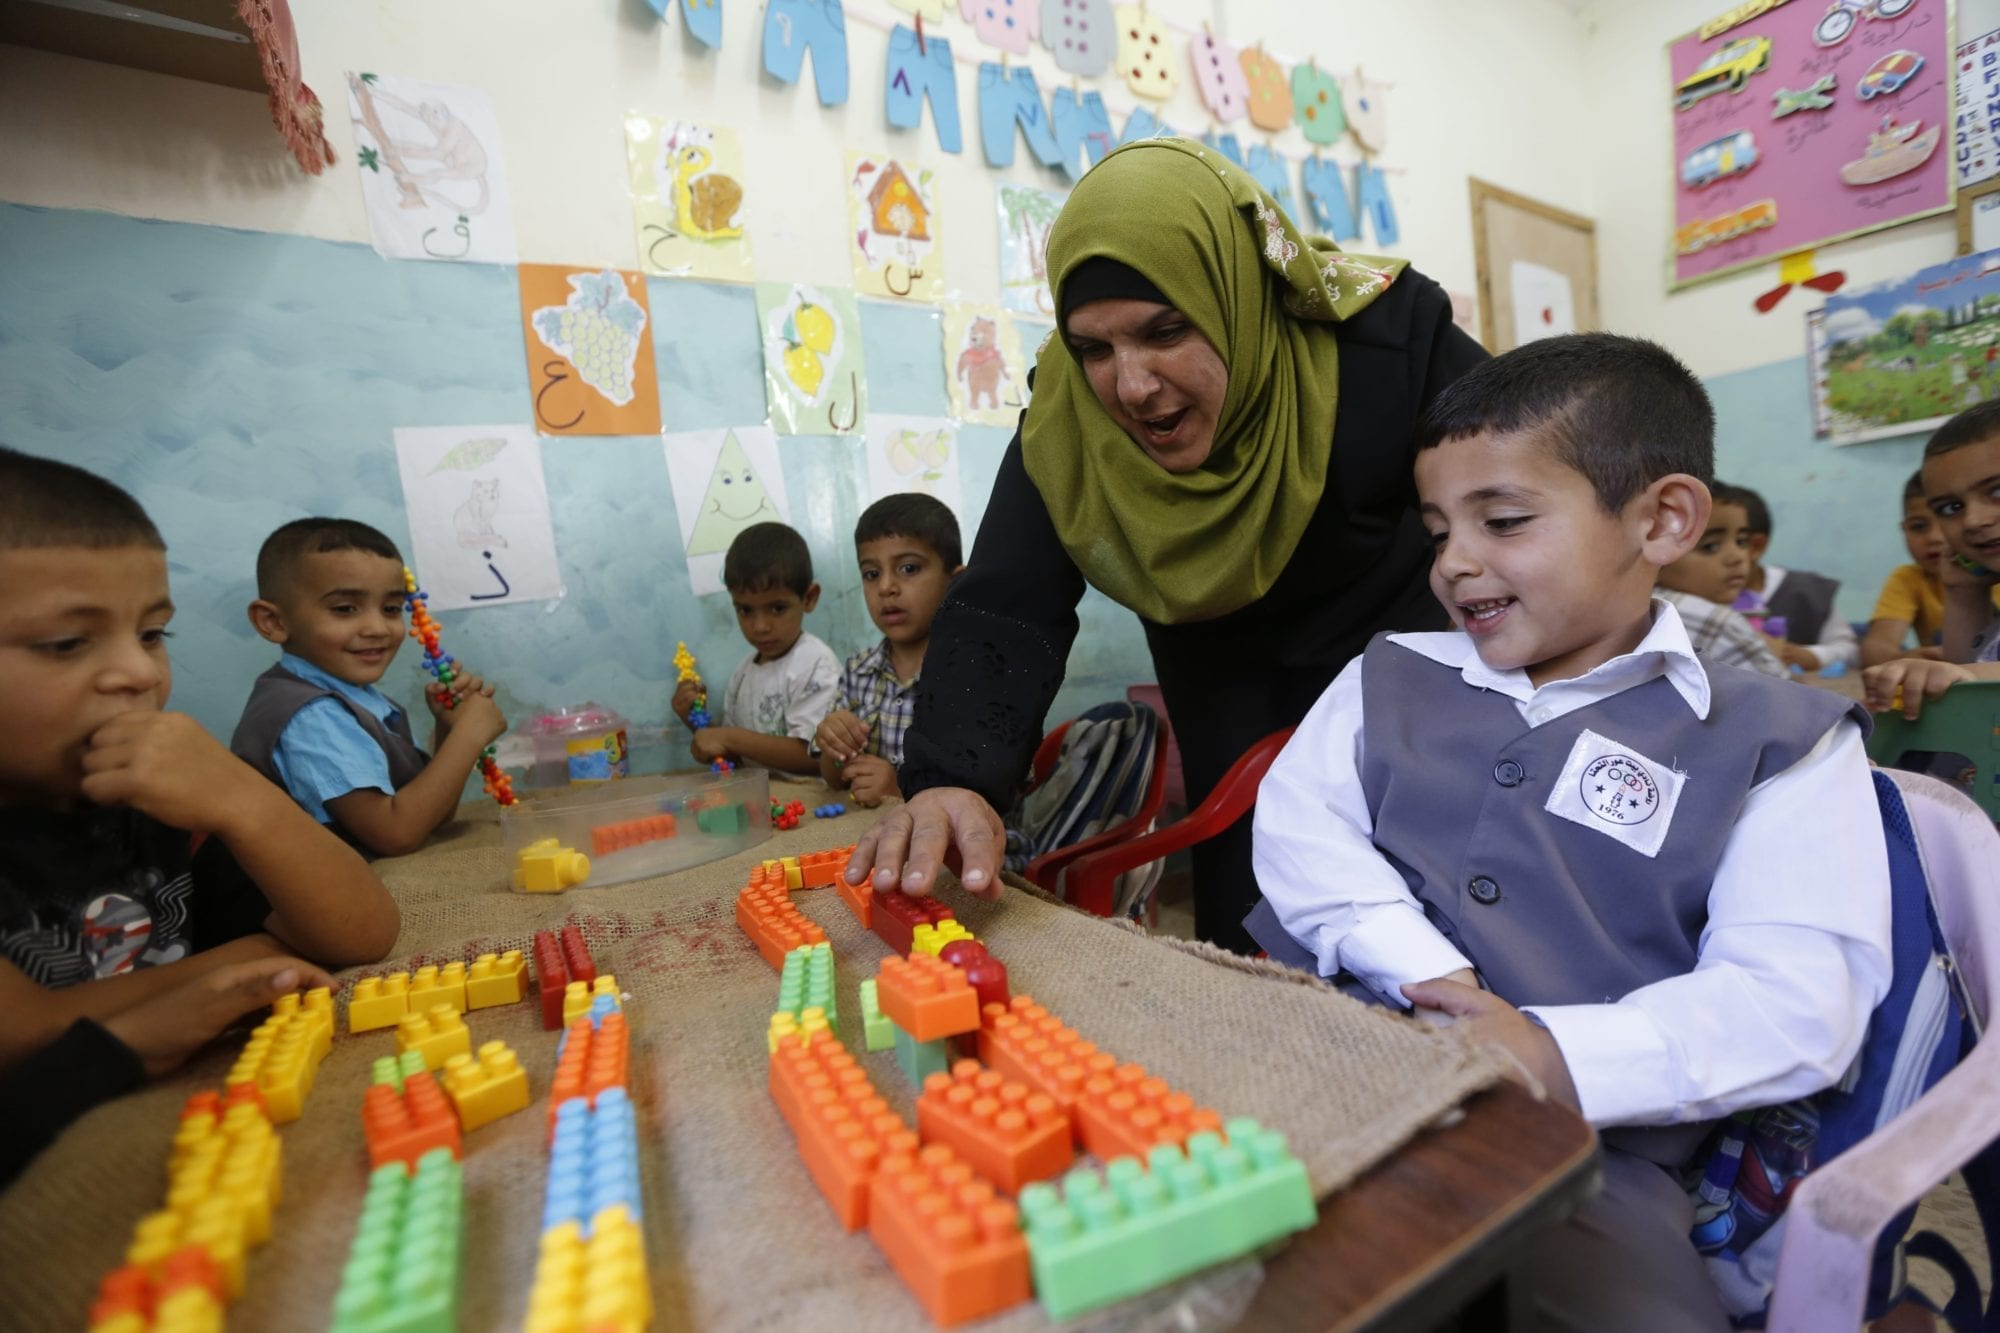 Palestine, kindergarten teacher, Solidarity Center